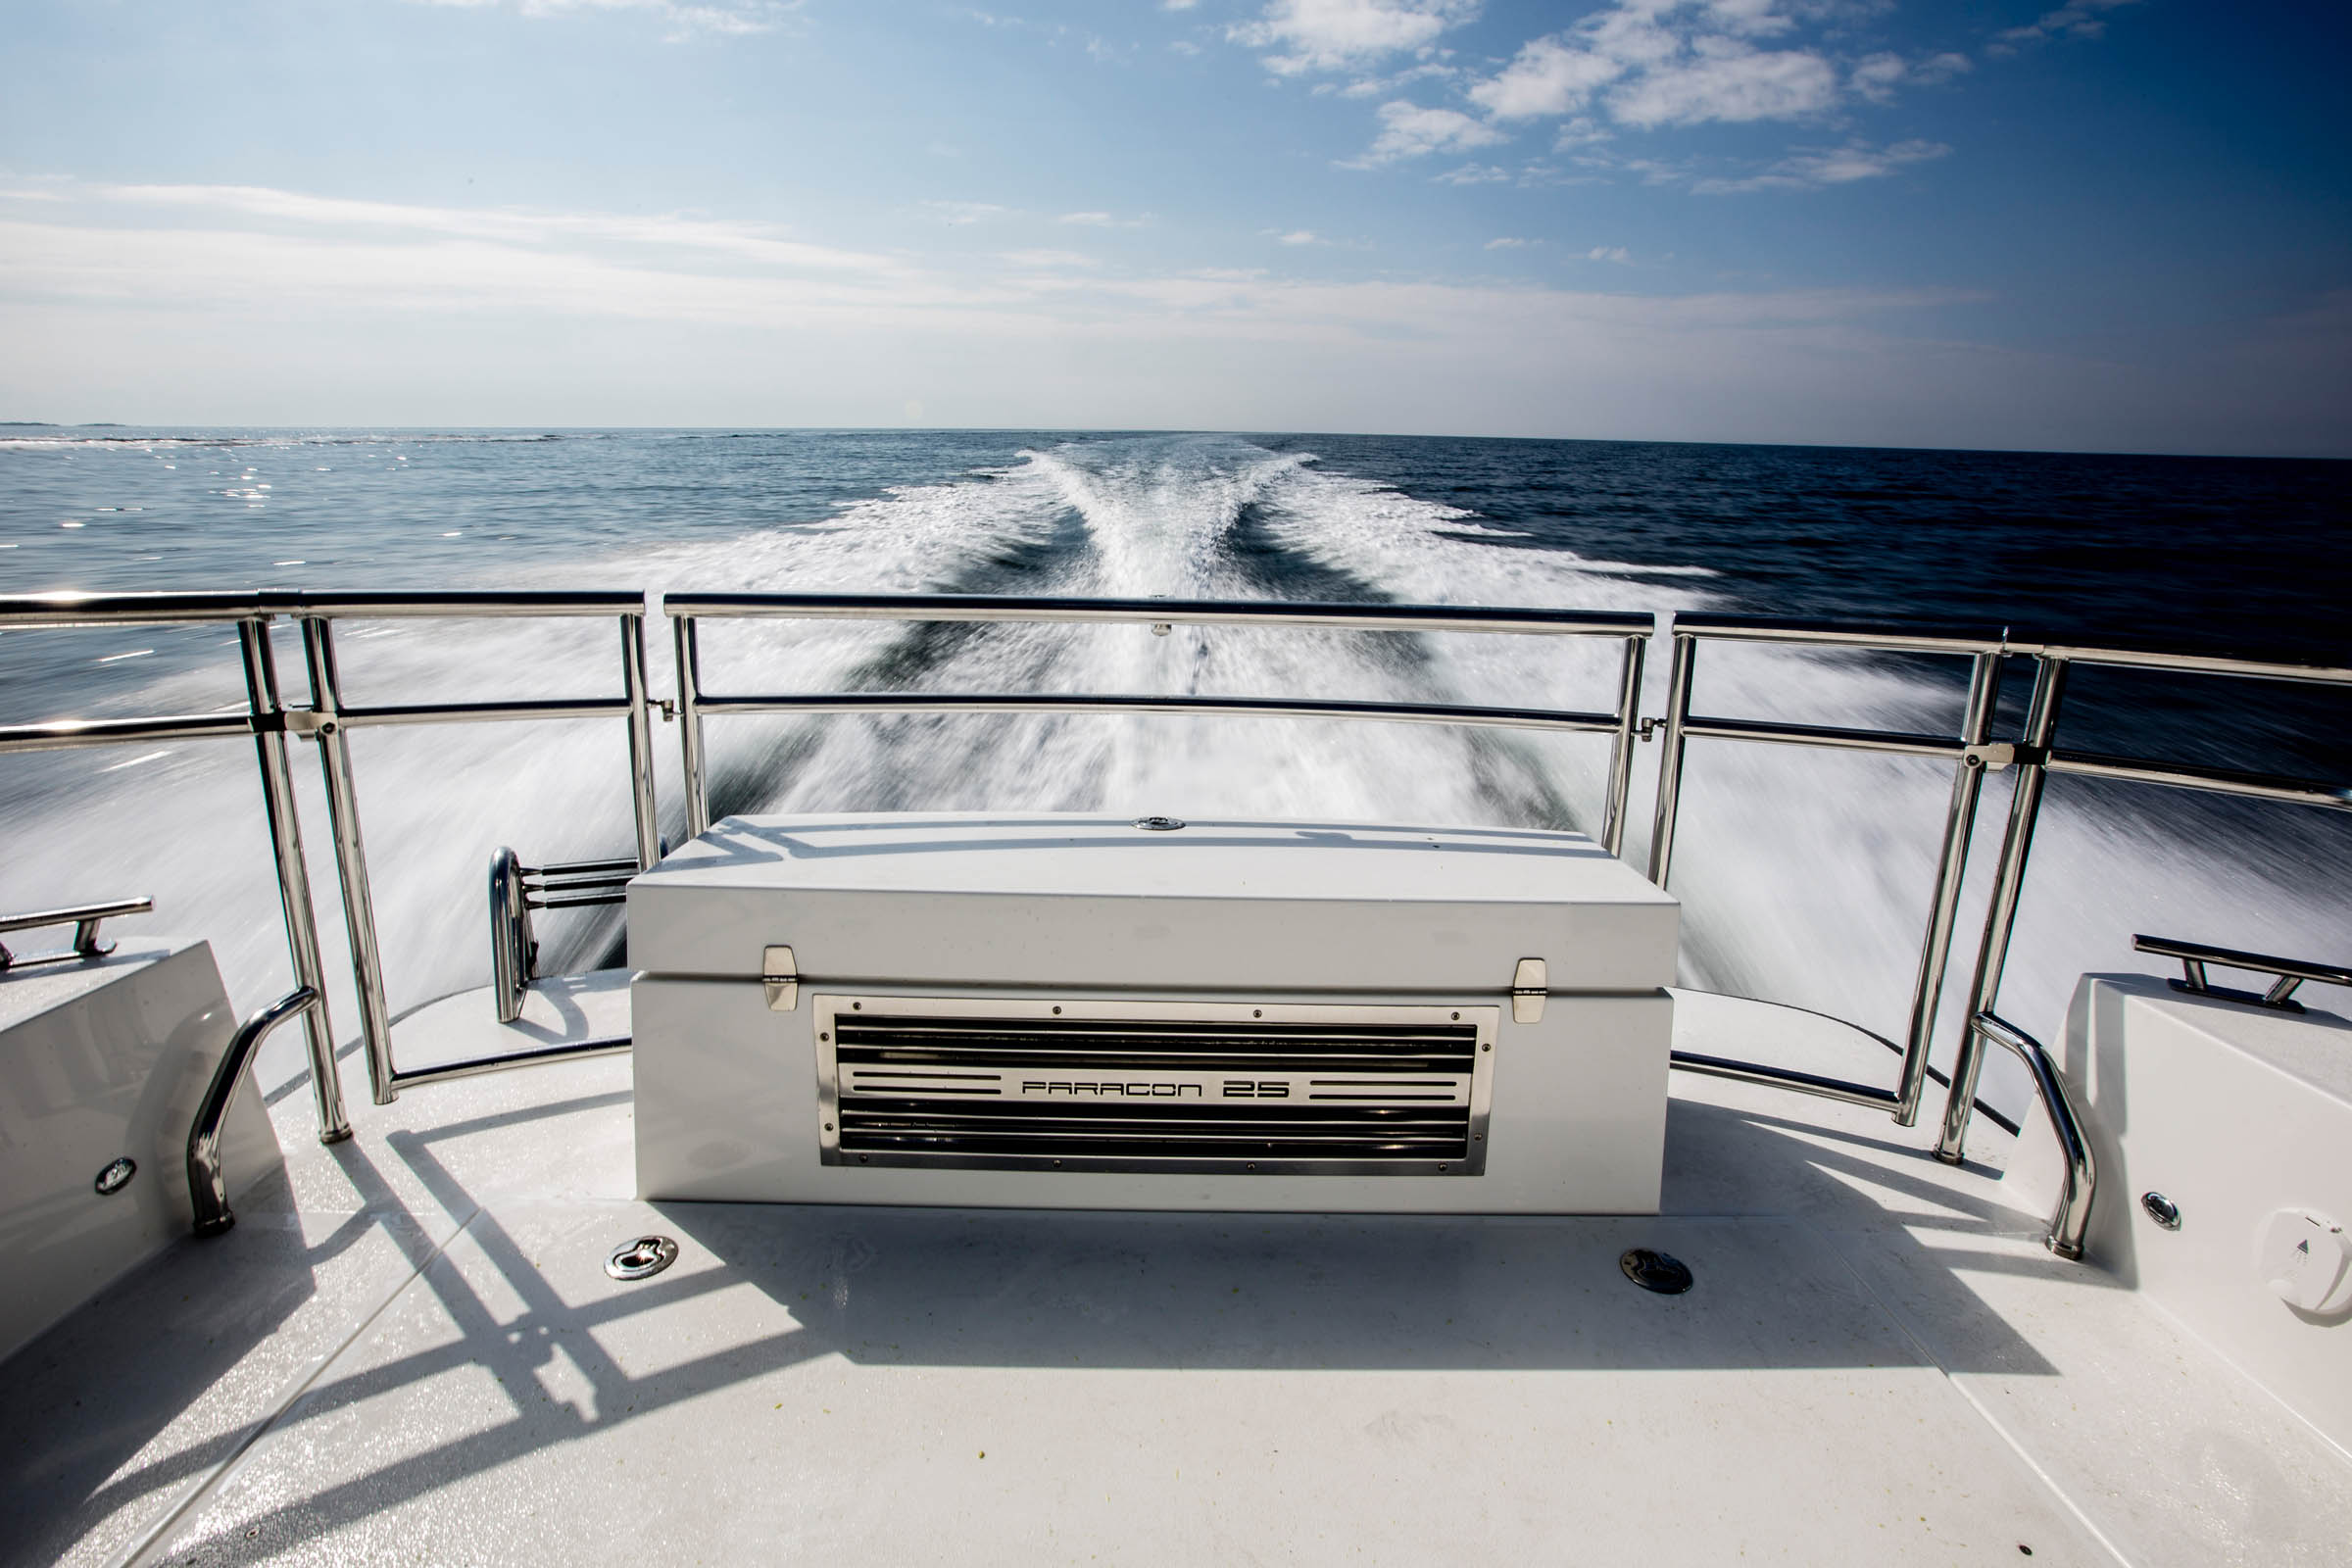 The back of a Paragon 21 which is driving on the sea